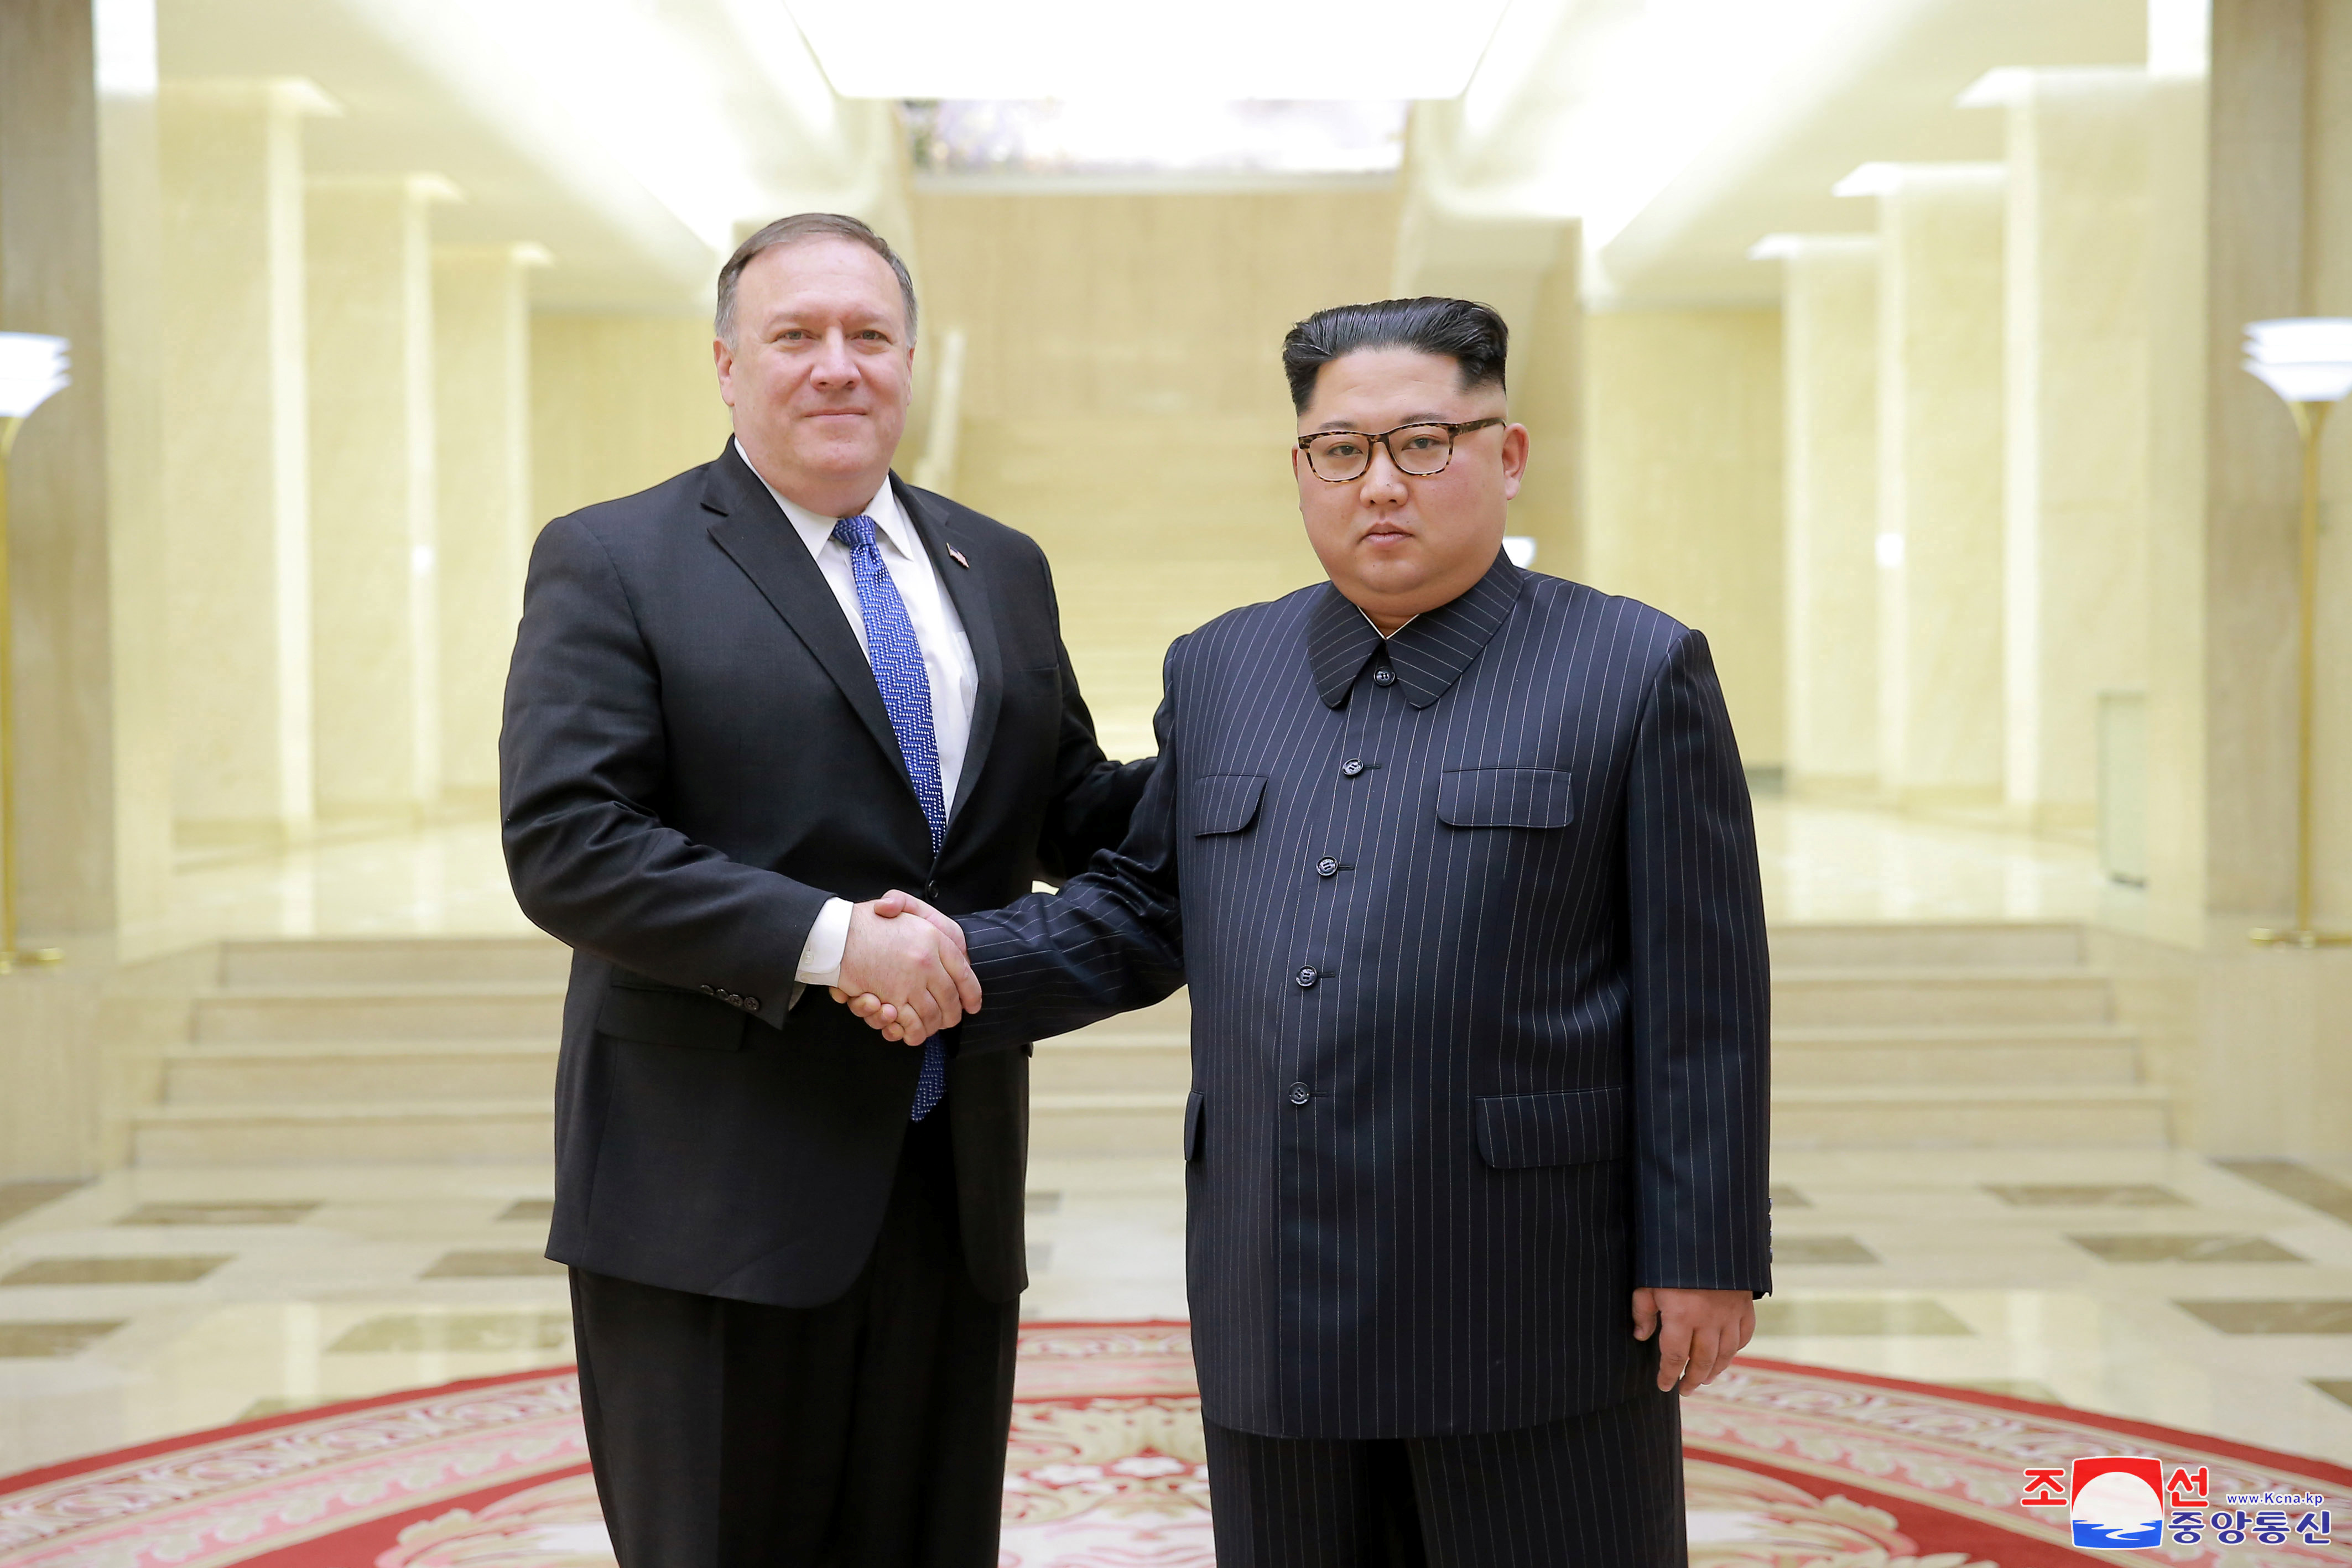 North Korean leader Kim Jong Un shakes hands with U.S. Secretary of State Mike Pompeo in this undated photo released on May 9, 2018 by North Korea's Korean Central News Agency (KCNA) in Pyongyang.